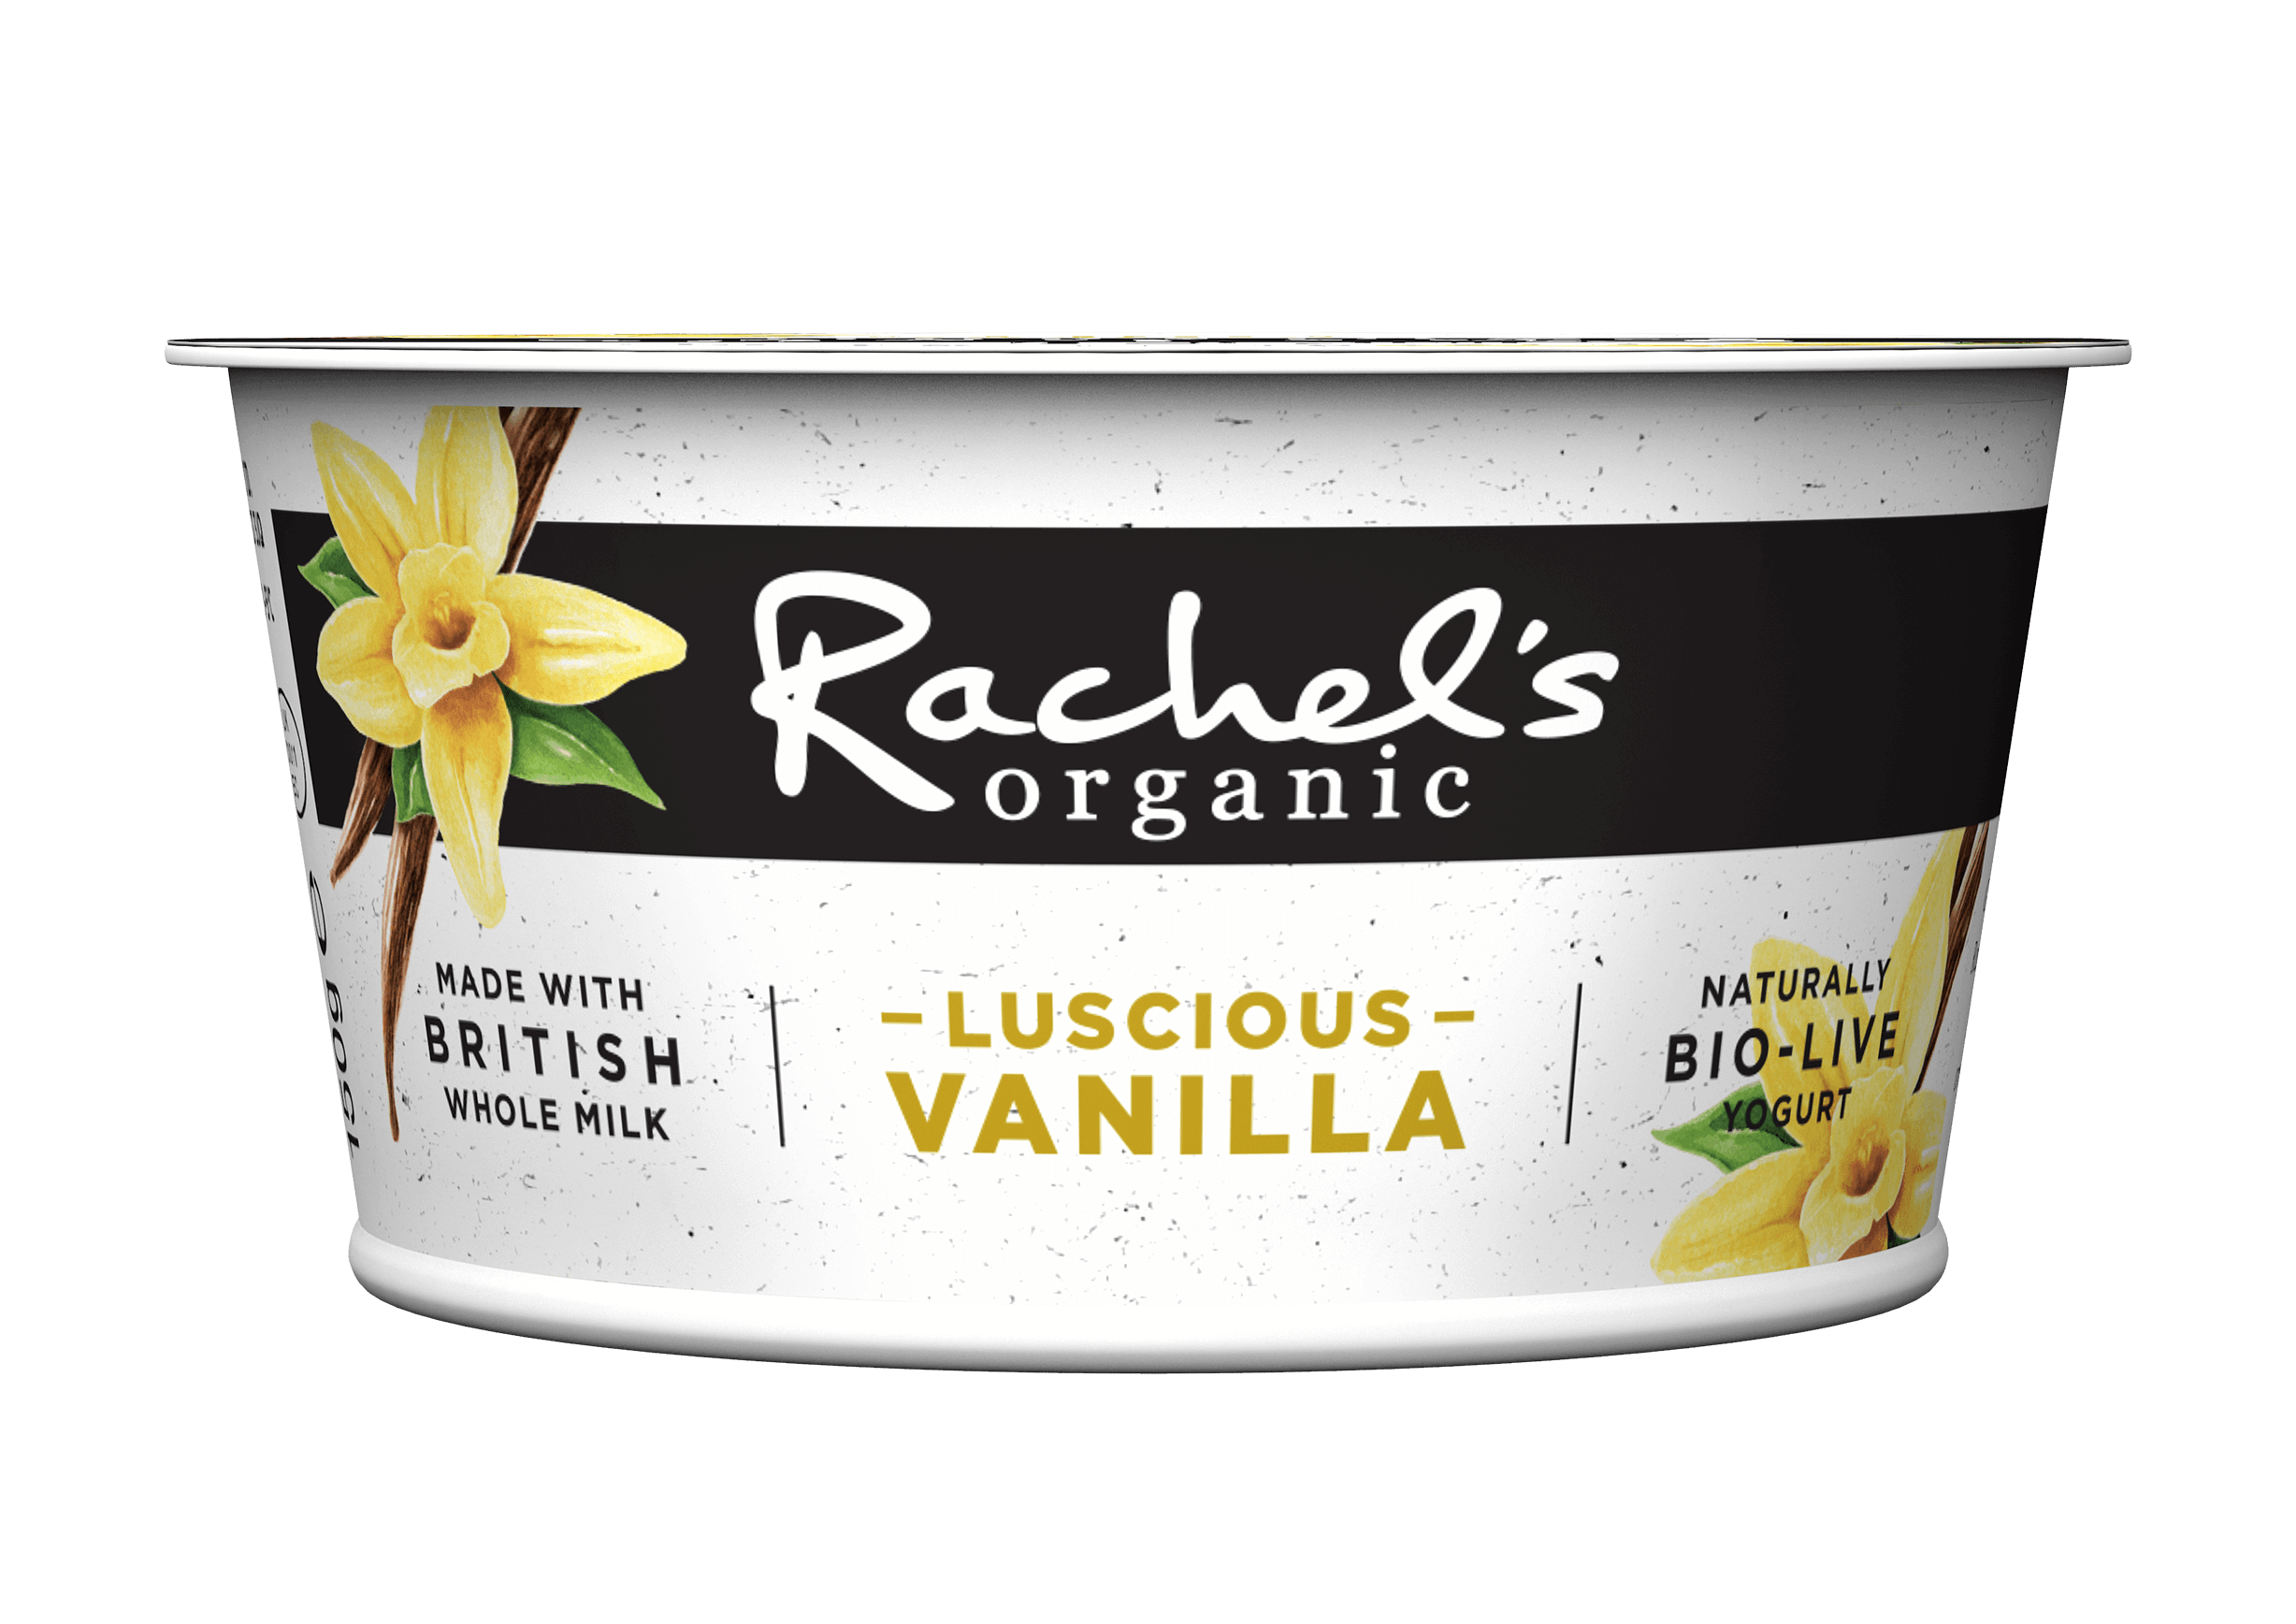 https://www.rachelsorganic.co.uk/wp-content/uploads/2019/12/5021638001073-3D-RACHELS-150G-POT-LUSCIOUS-VANILLA.png